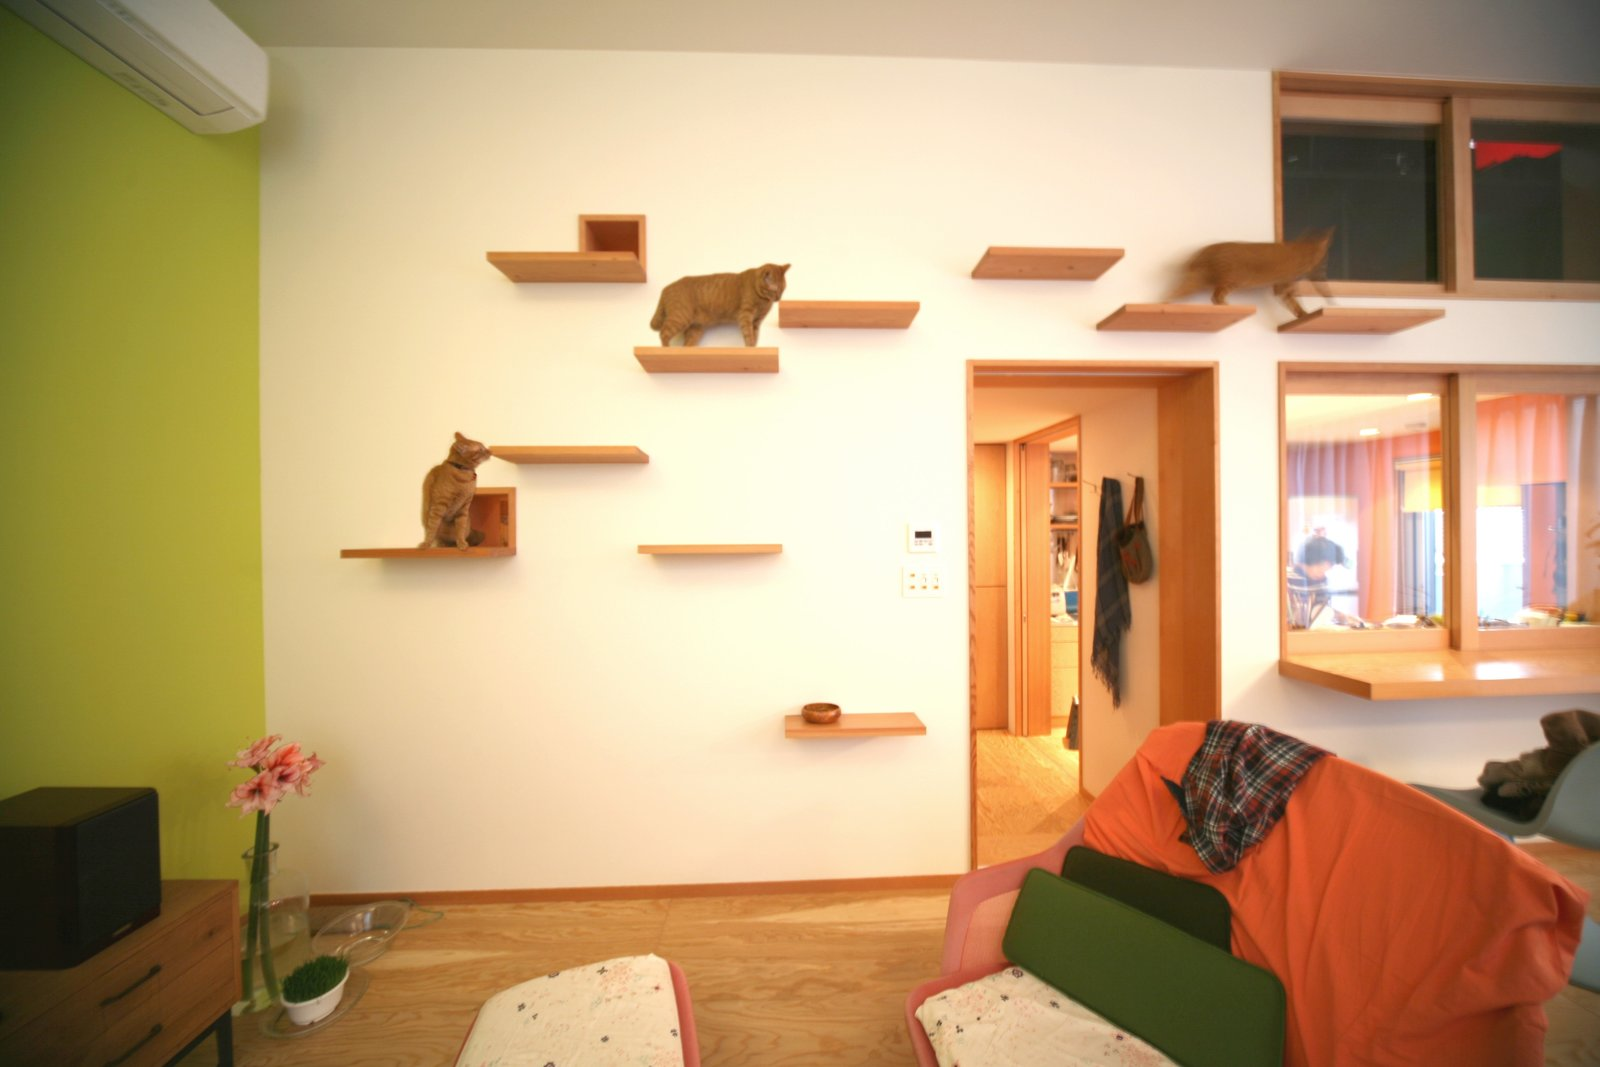 Living Room, Shelves, and Sofa Shelf steps provide playful perches for kitties.